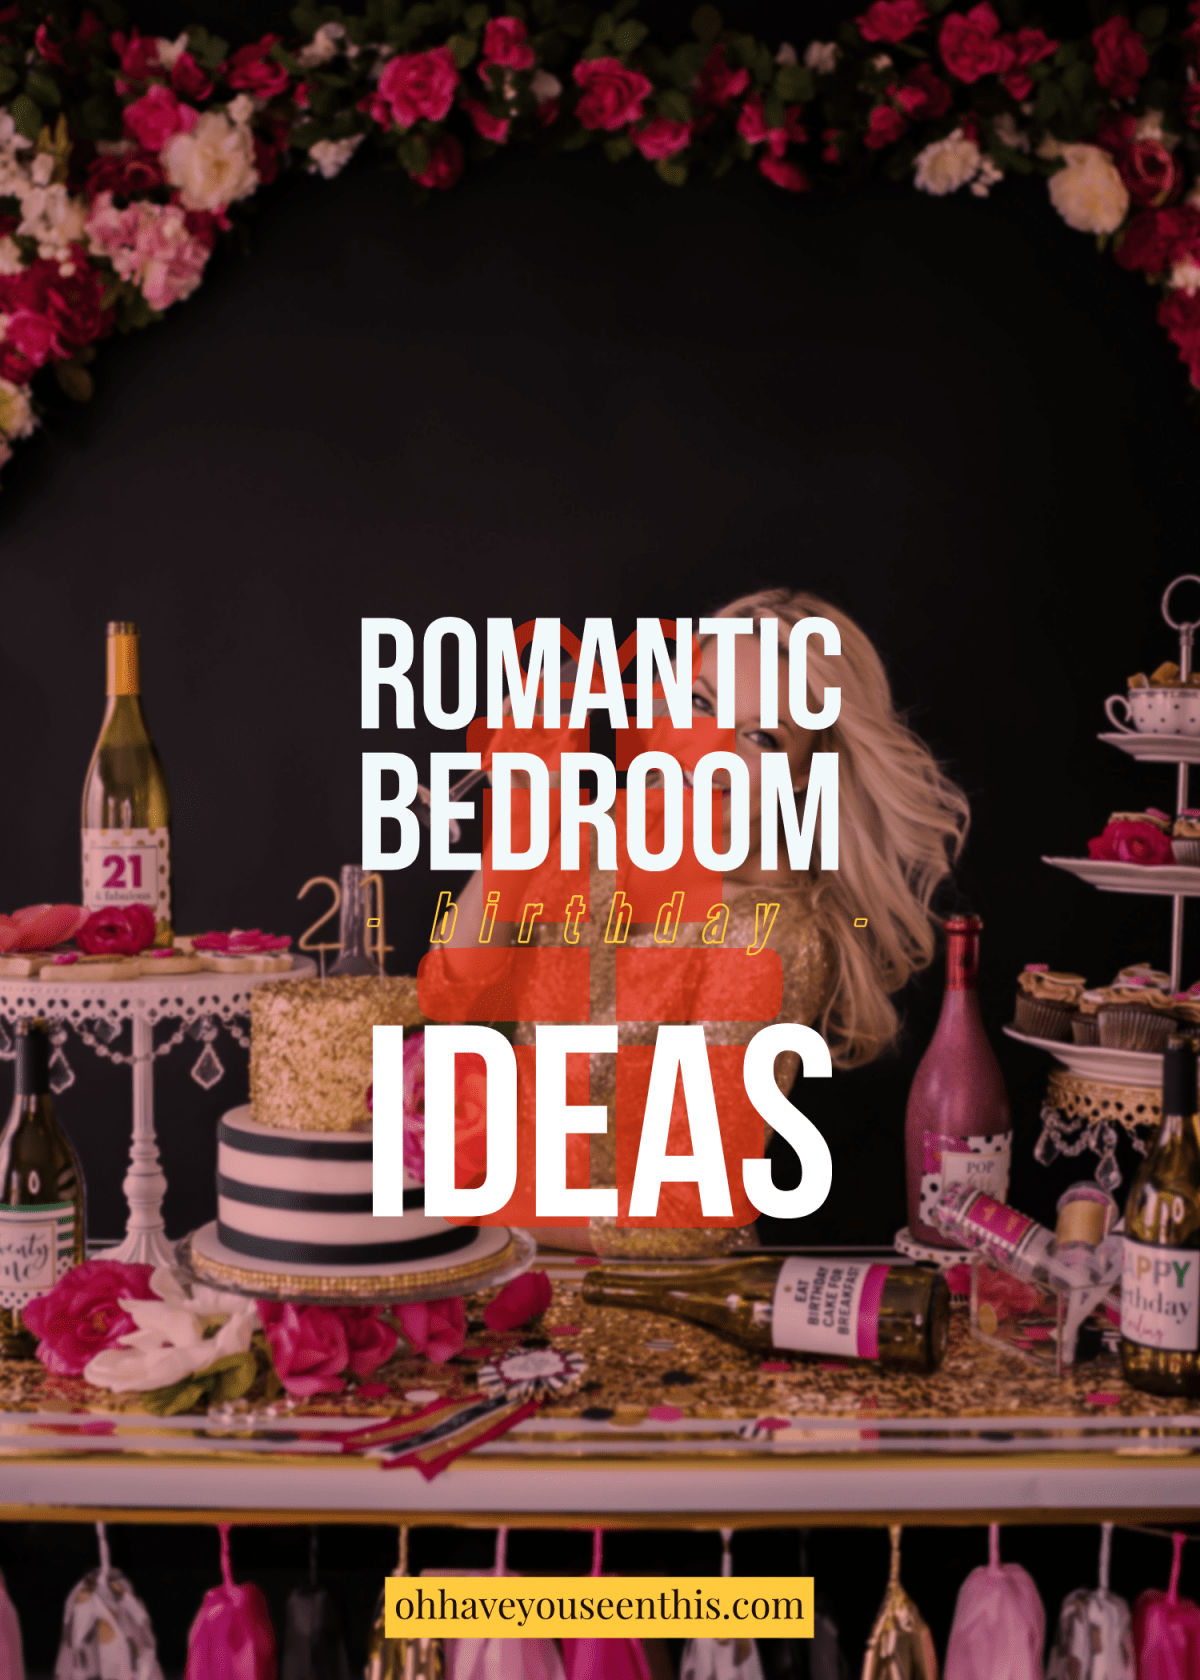 Romantic bedroom birthday ideas